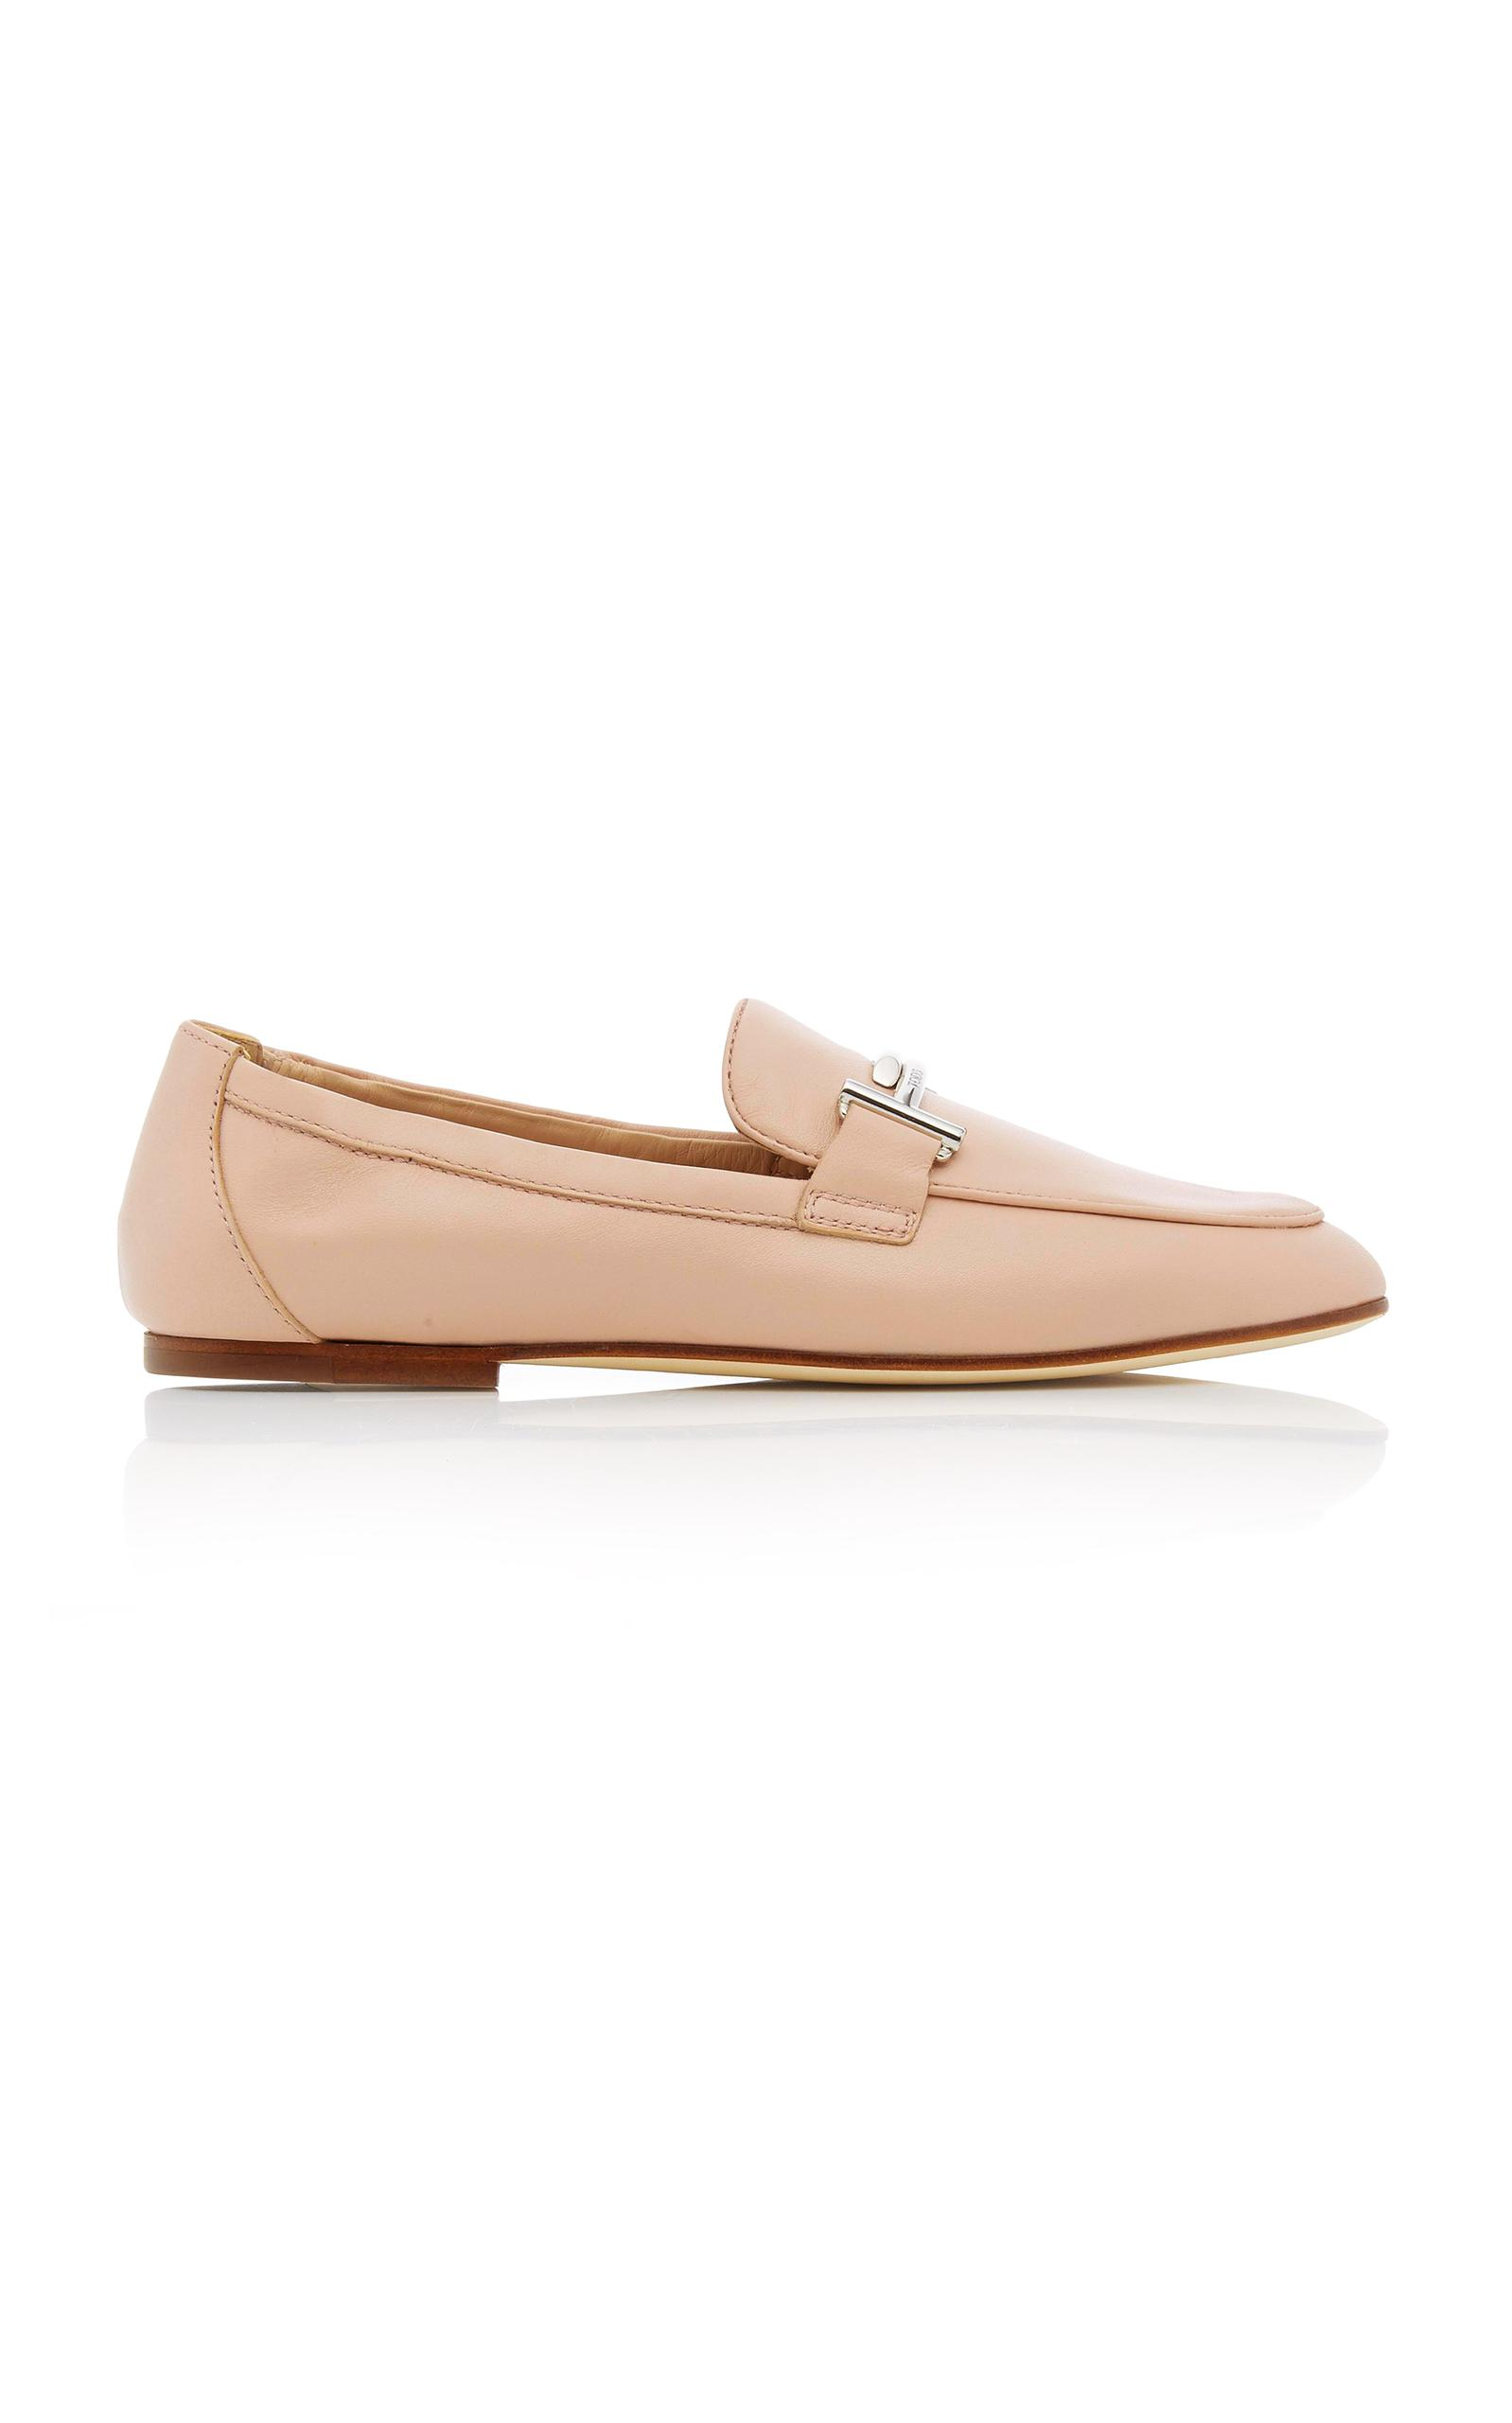 44328abcd35 Lyst - Tod S M o Exclusive  Leather Sole Loafer in Pink